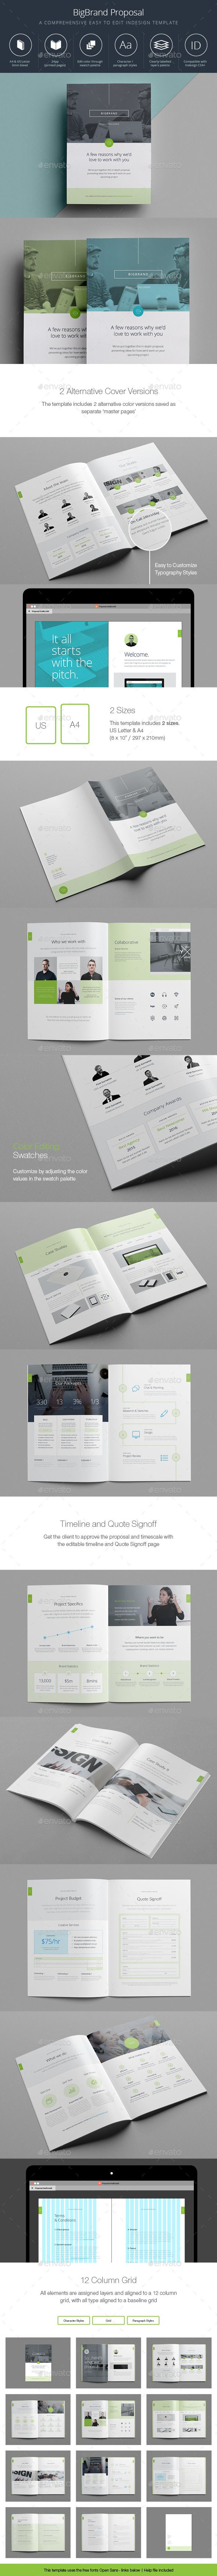 BigBrand Proposal Template #design Download: http://graphicriver.net/item/bigbrand-proposal/12041988?ref=ksioks